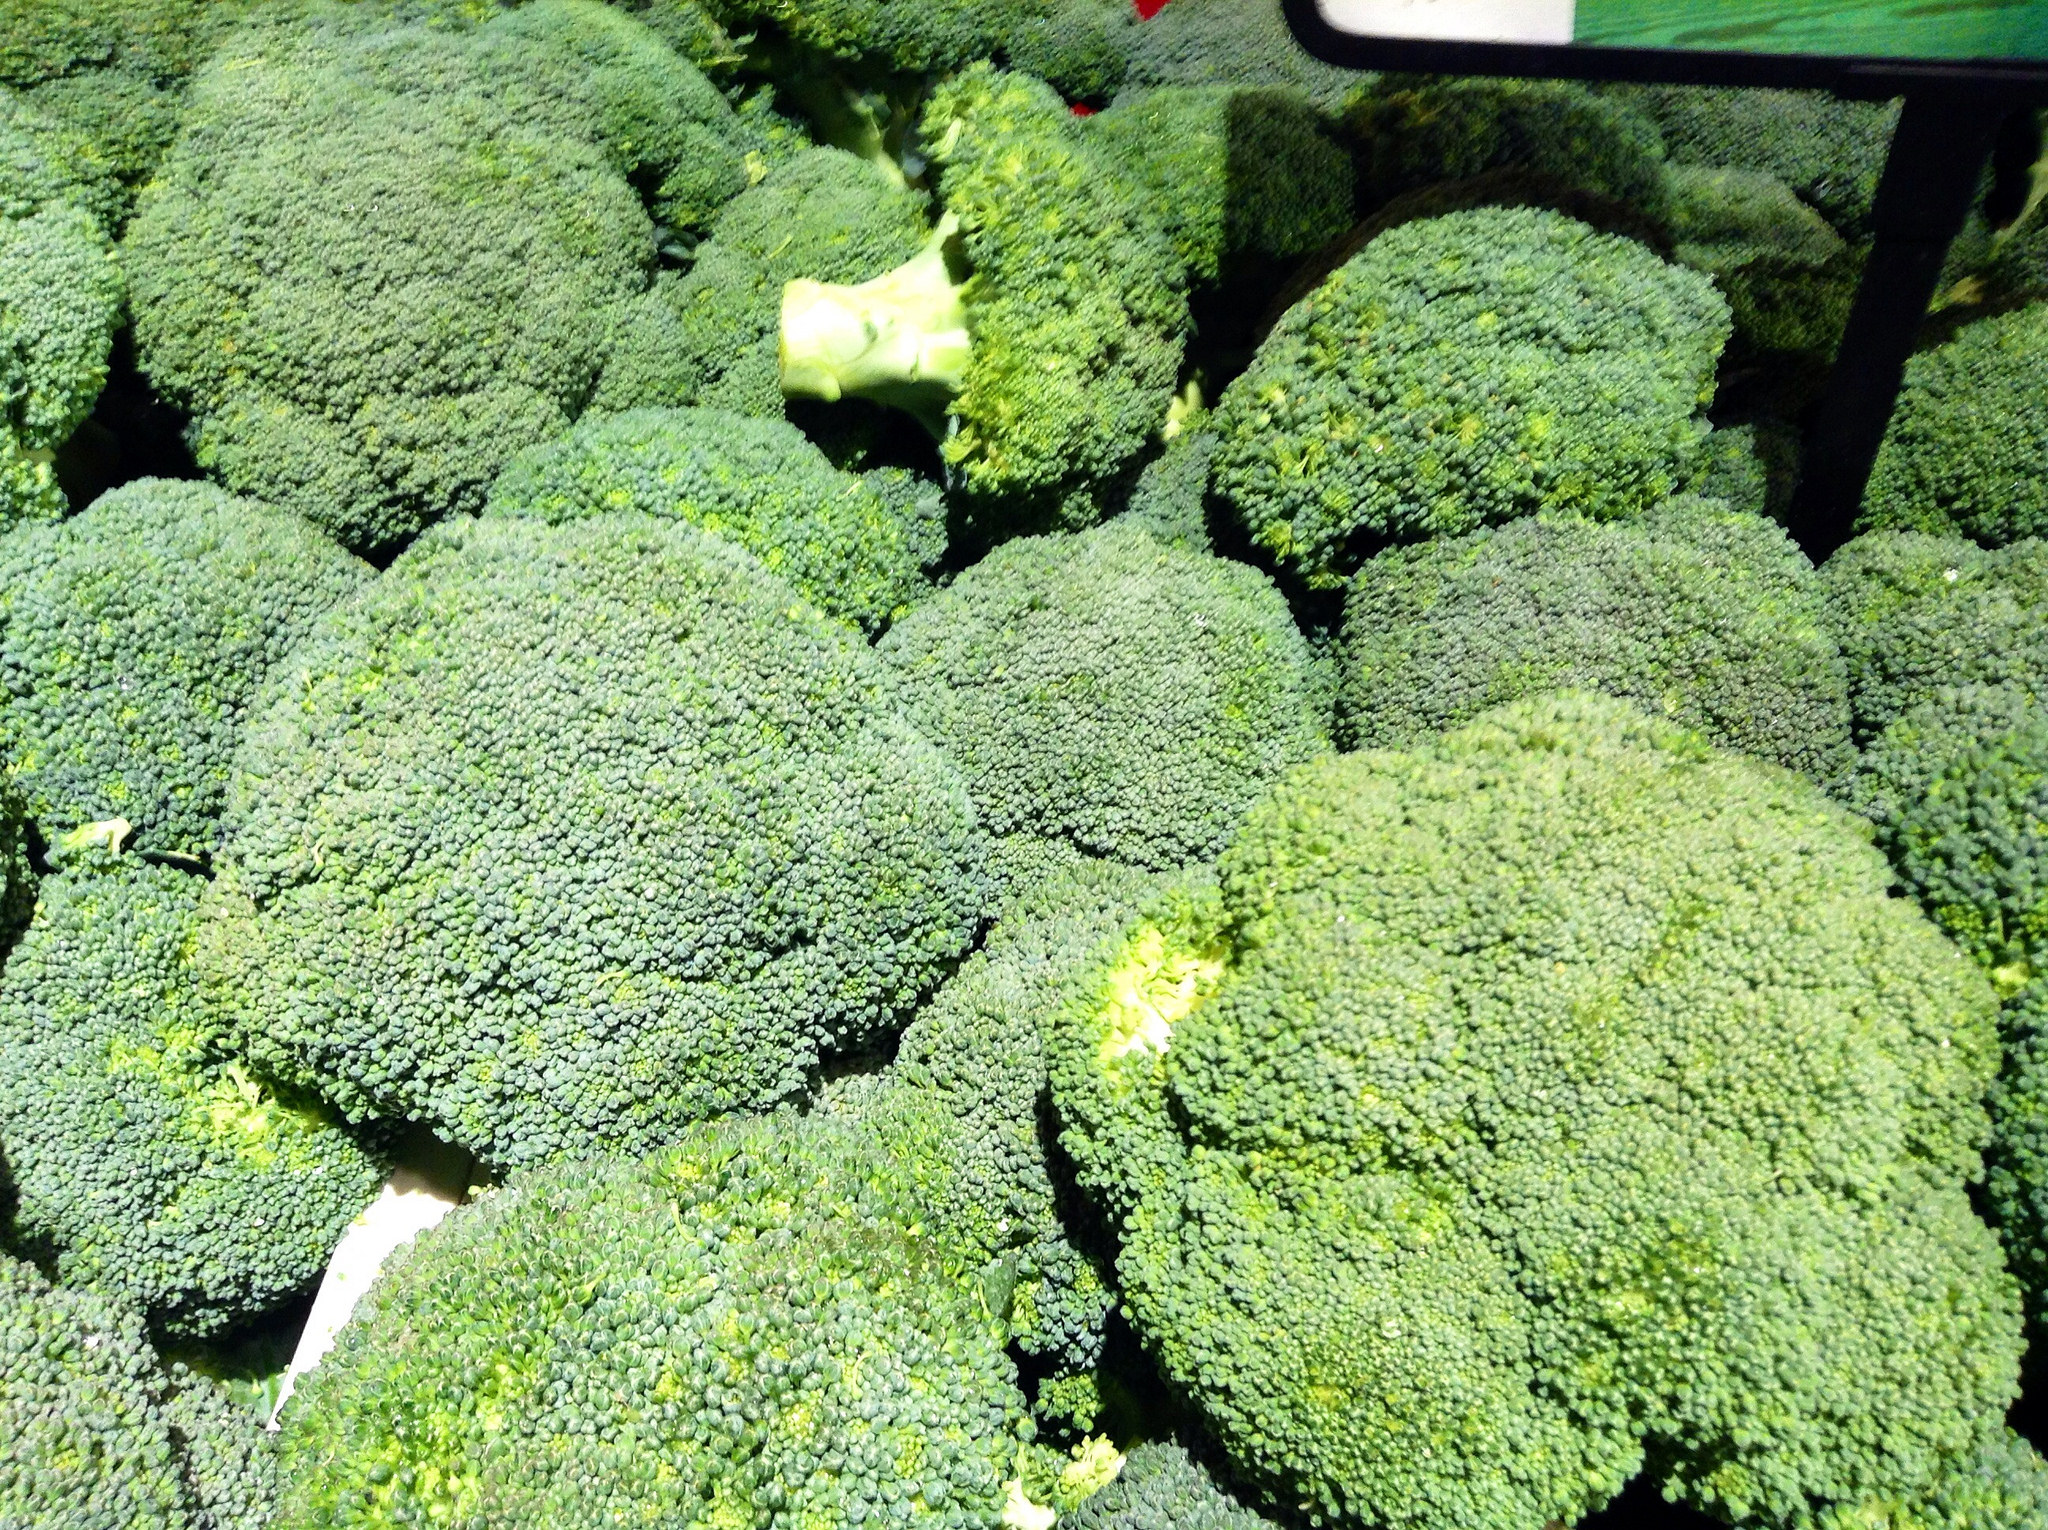 Broccoli fights type 2 diabetes